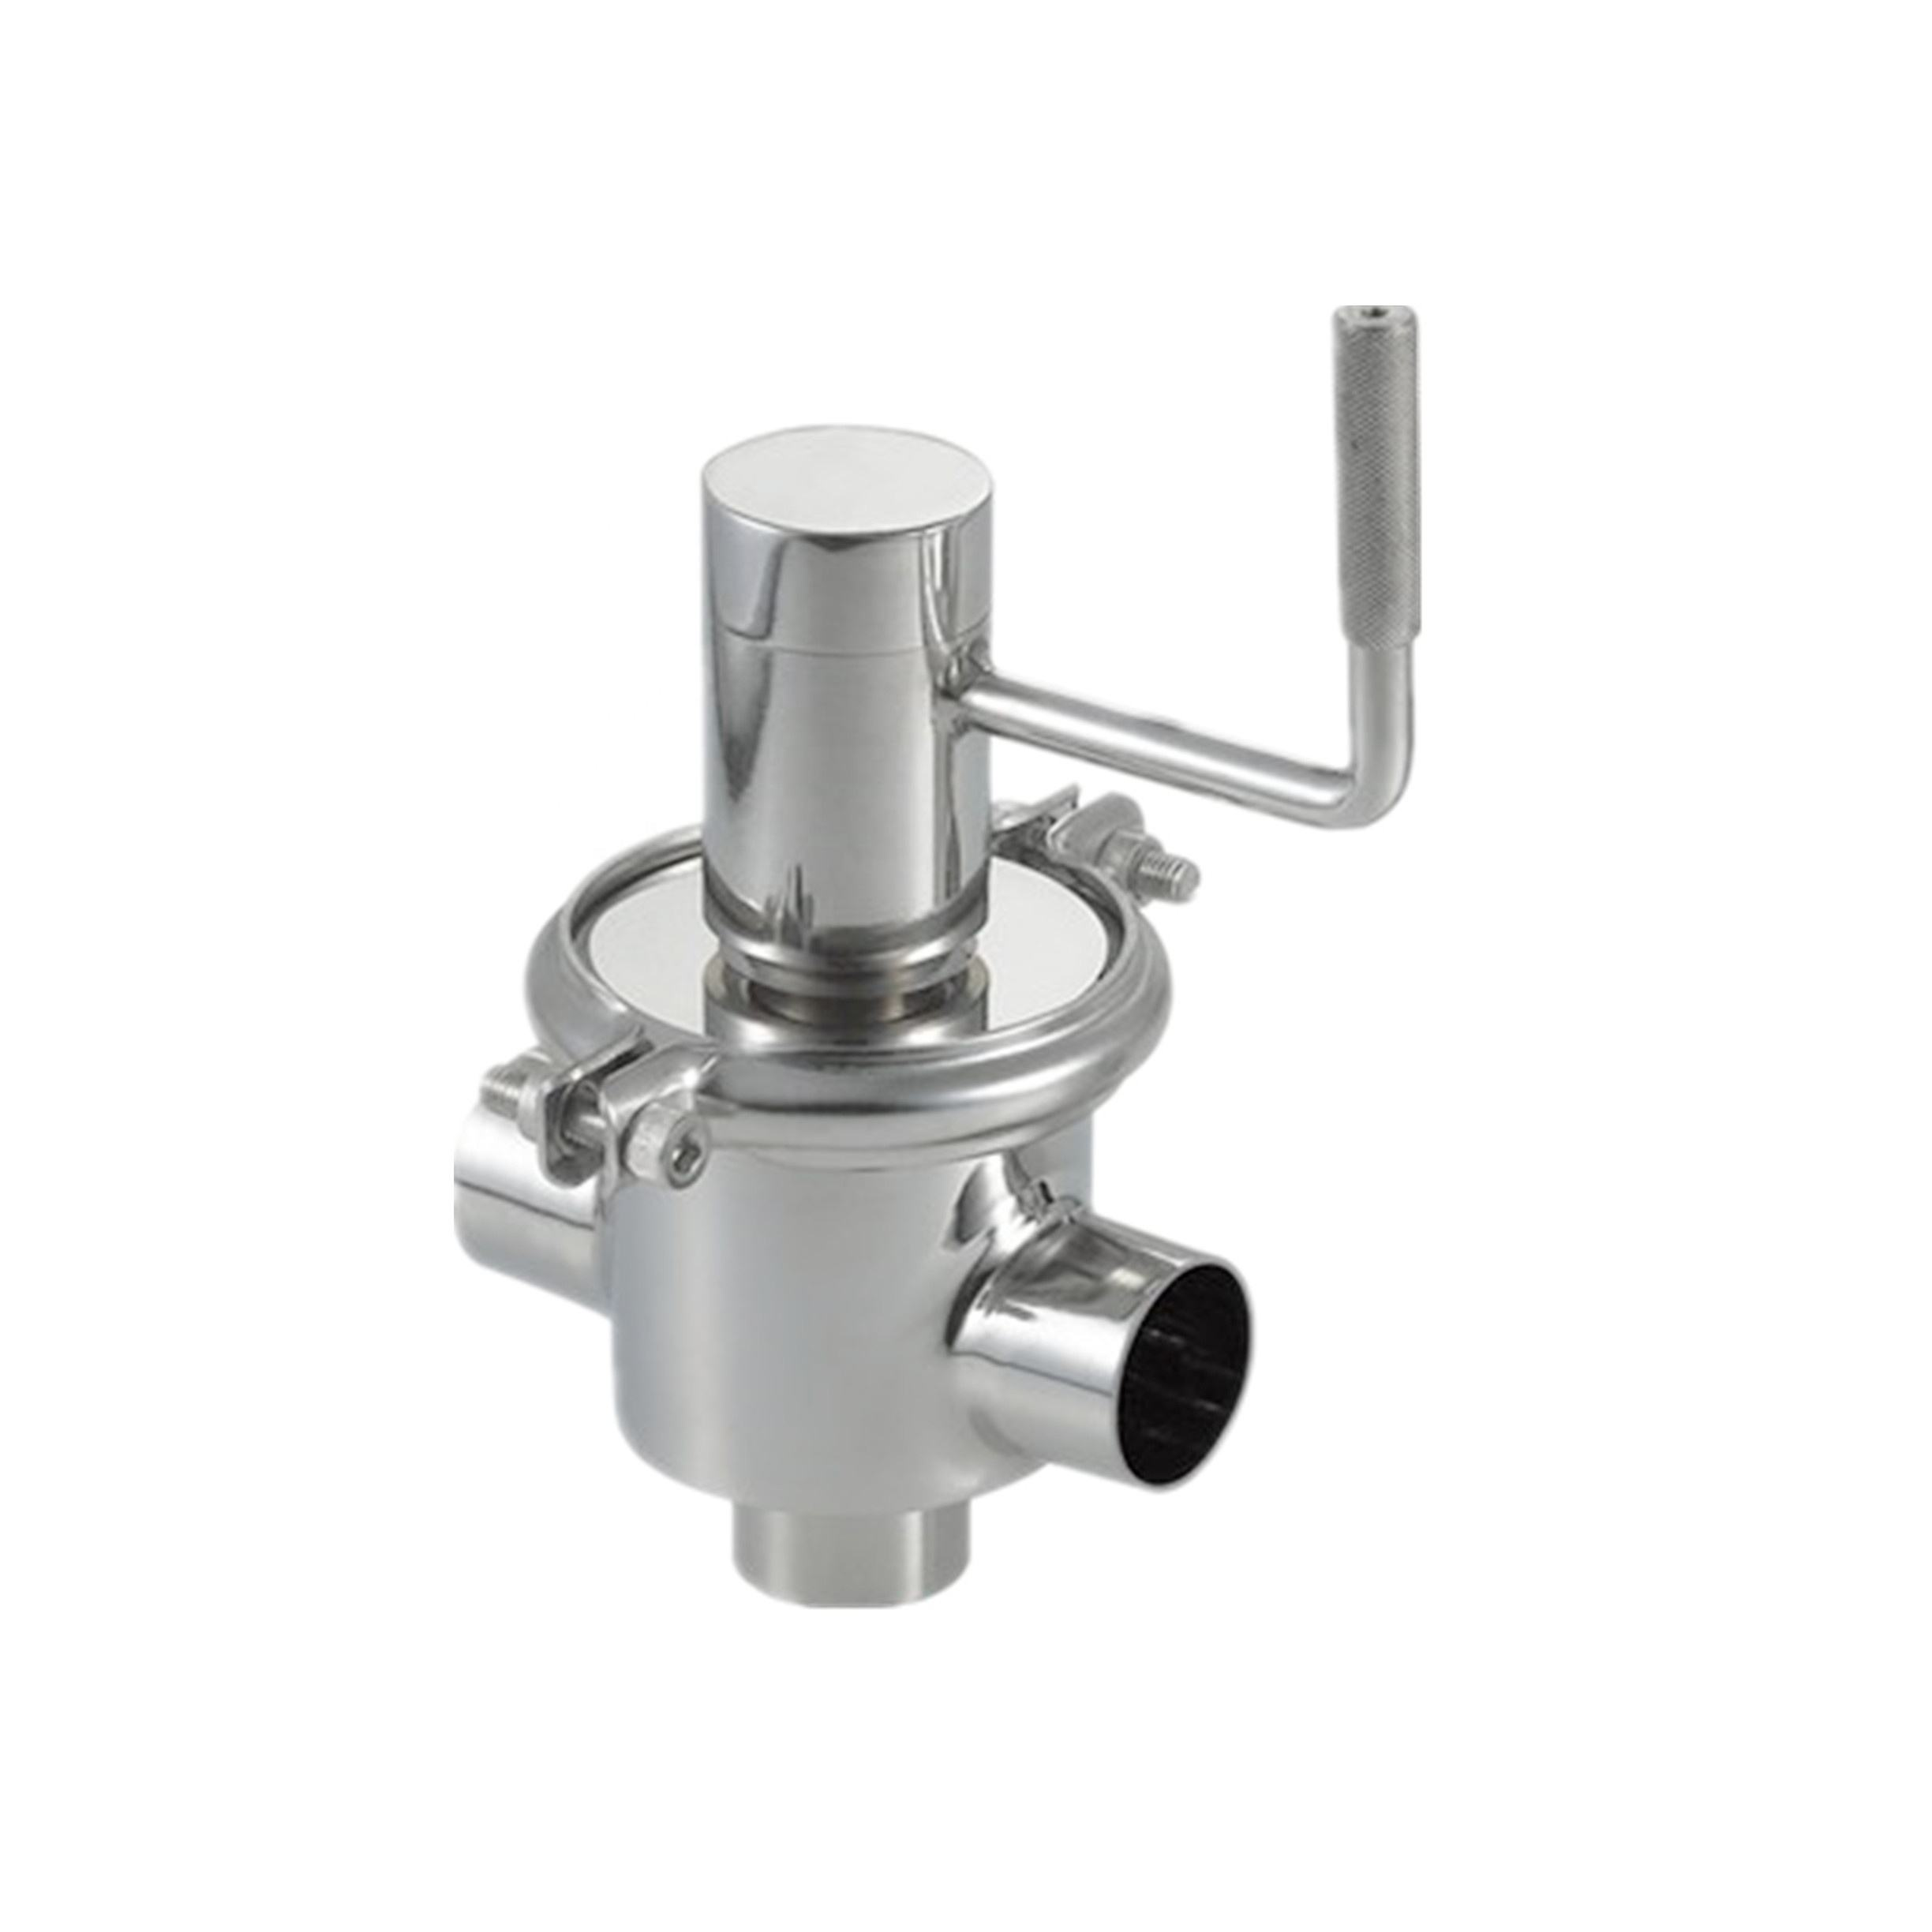 Stainless steel sanitary manual seat valve/reversing valve